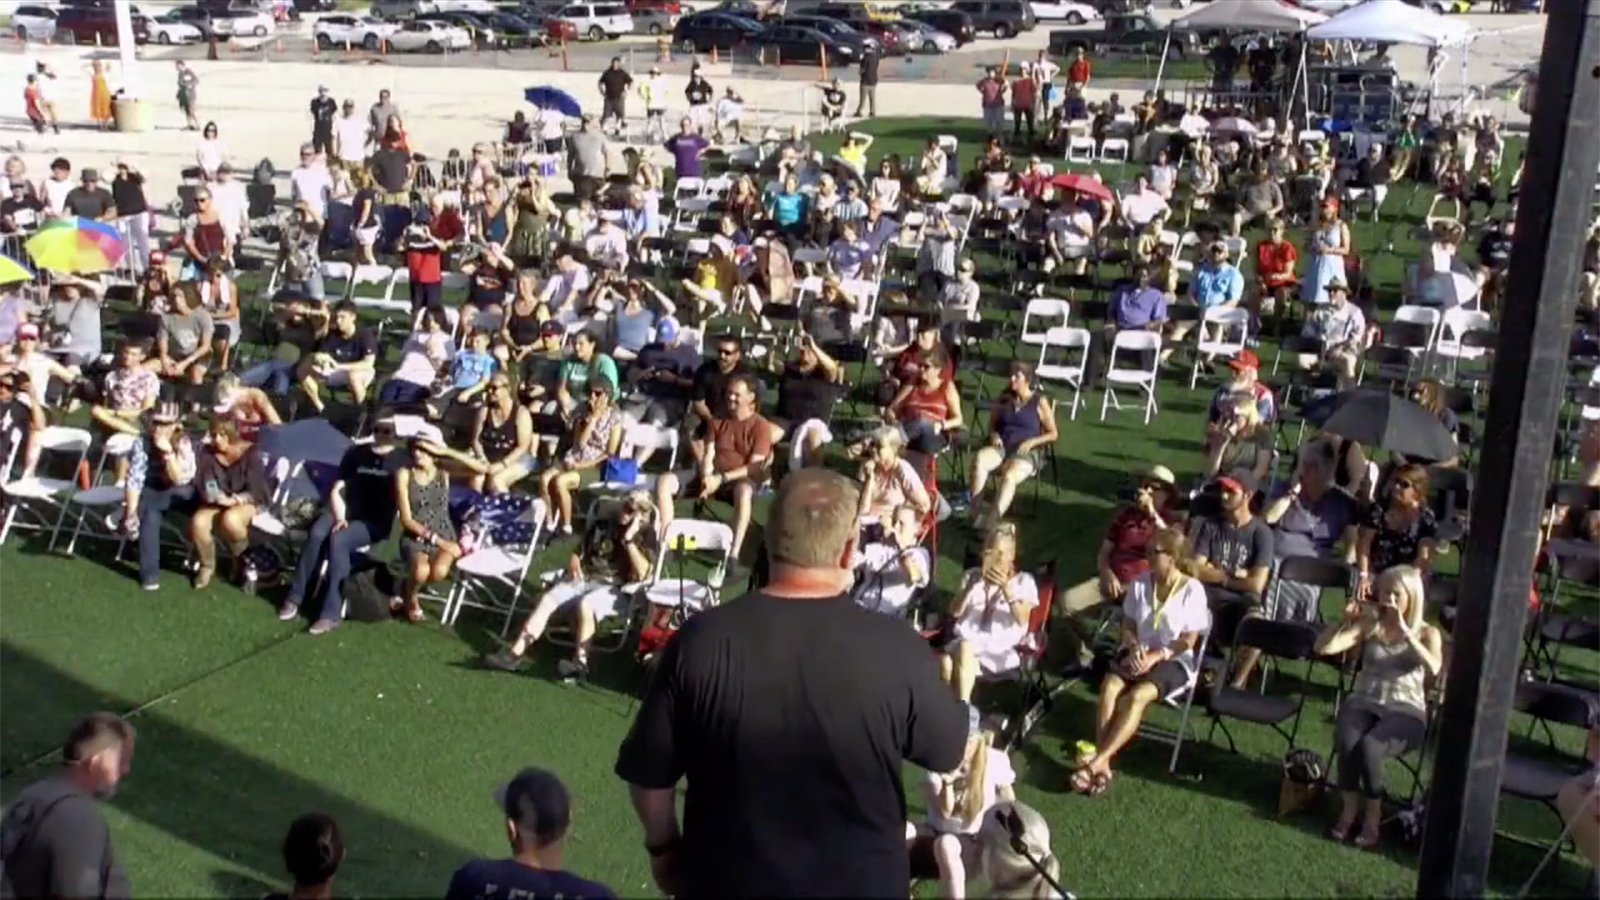 The crowd at Bards Fest on Aug. 29, 2021, in St. Louis. Video screengrab